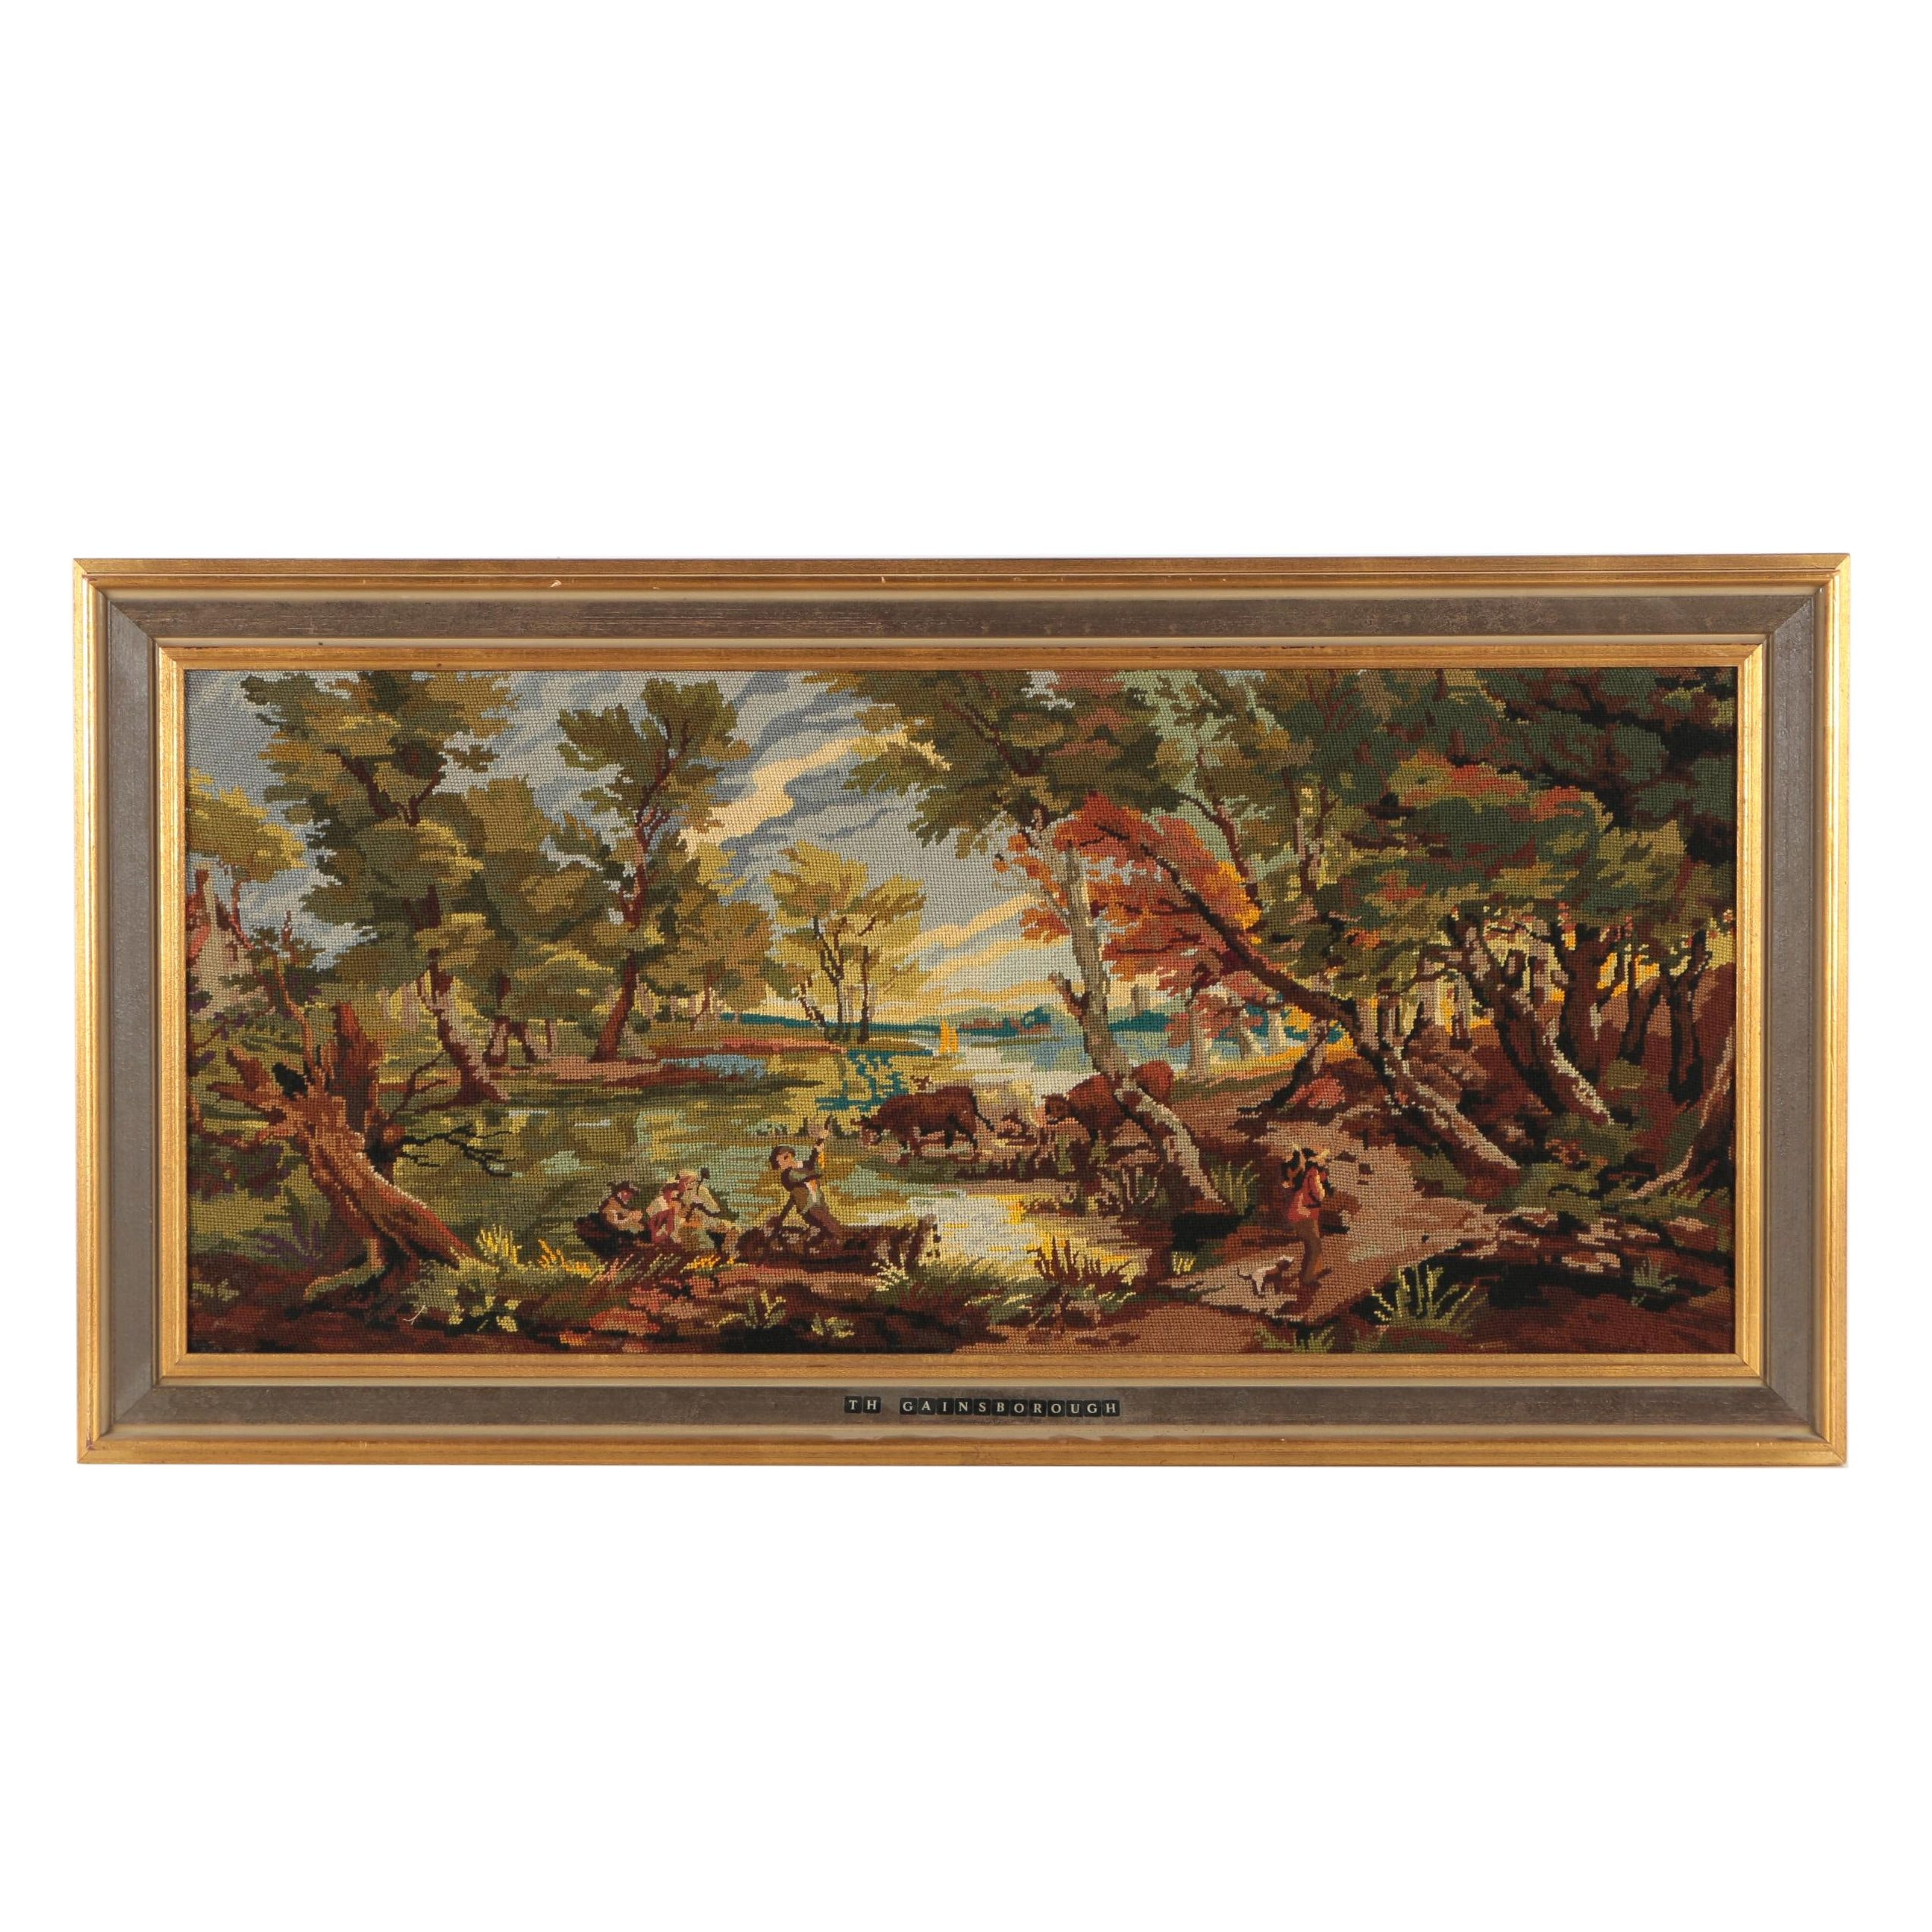 Handmade Needlepoint Composition After Thomas Gainsborough